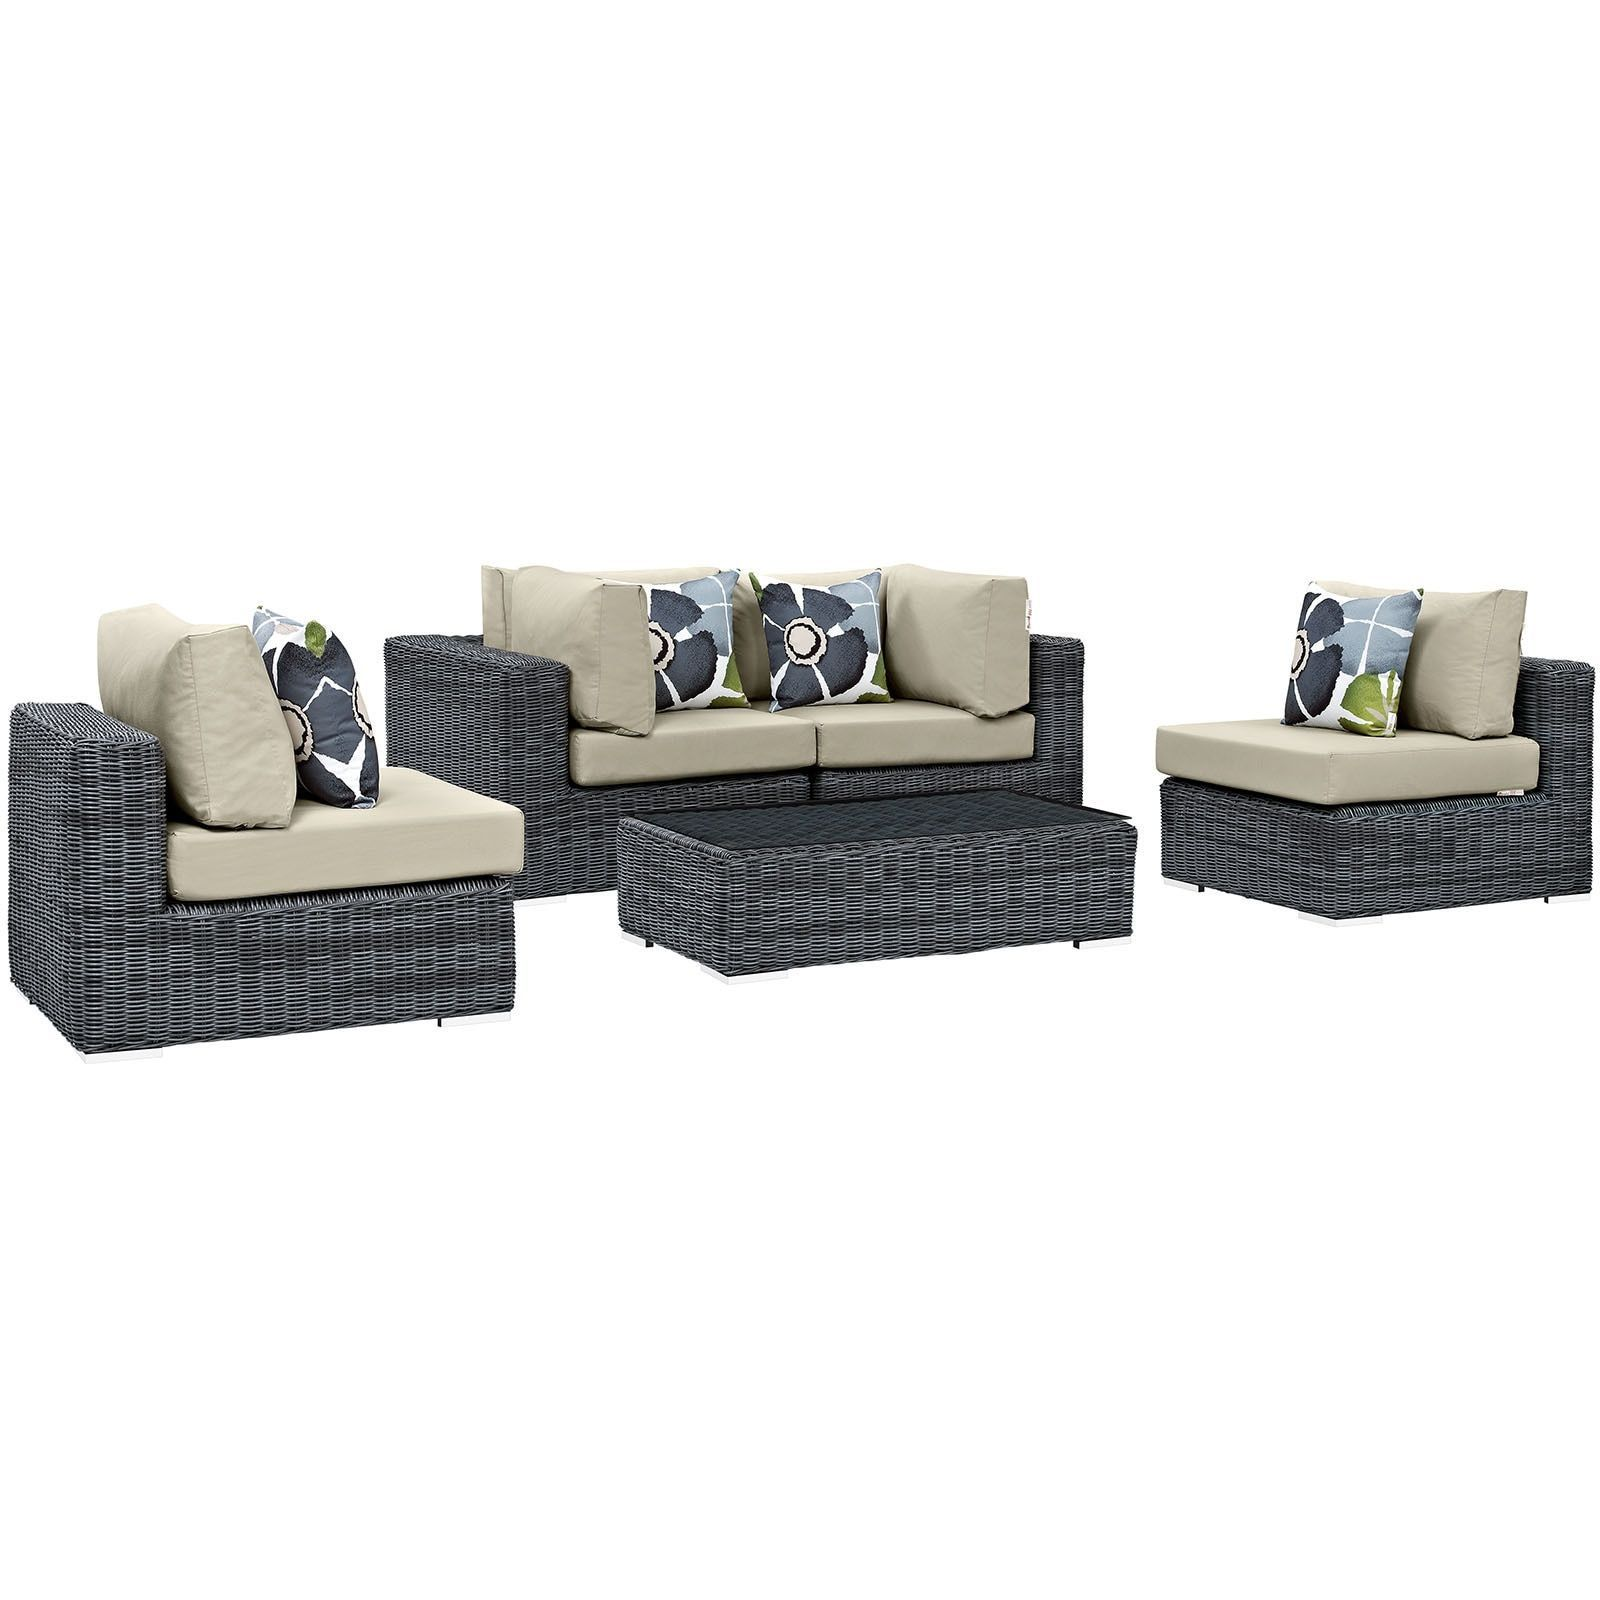 Modway Summon piece Outdoor Patio Sunbrella Sectional Set Canvas